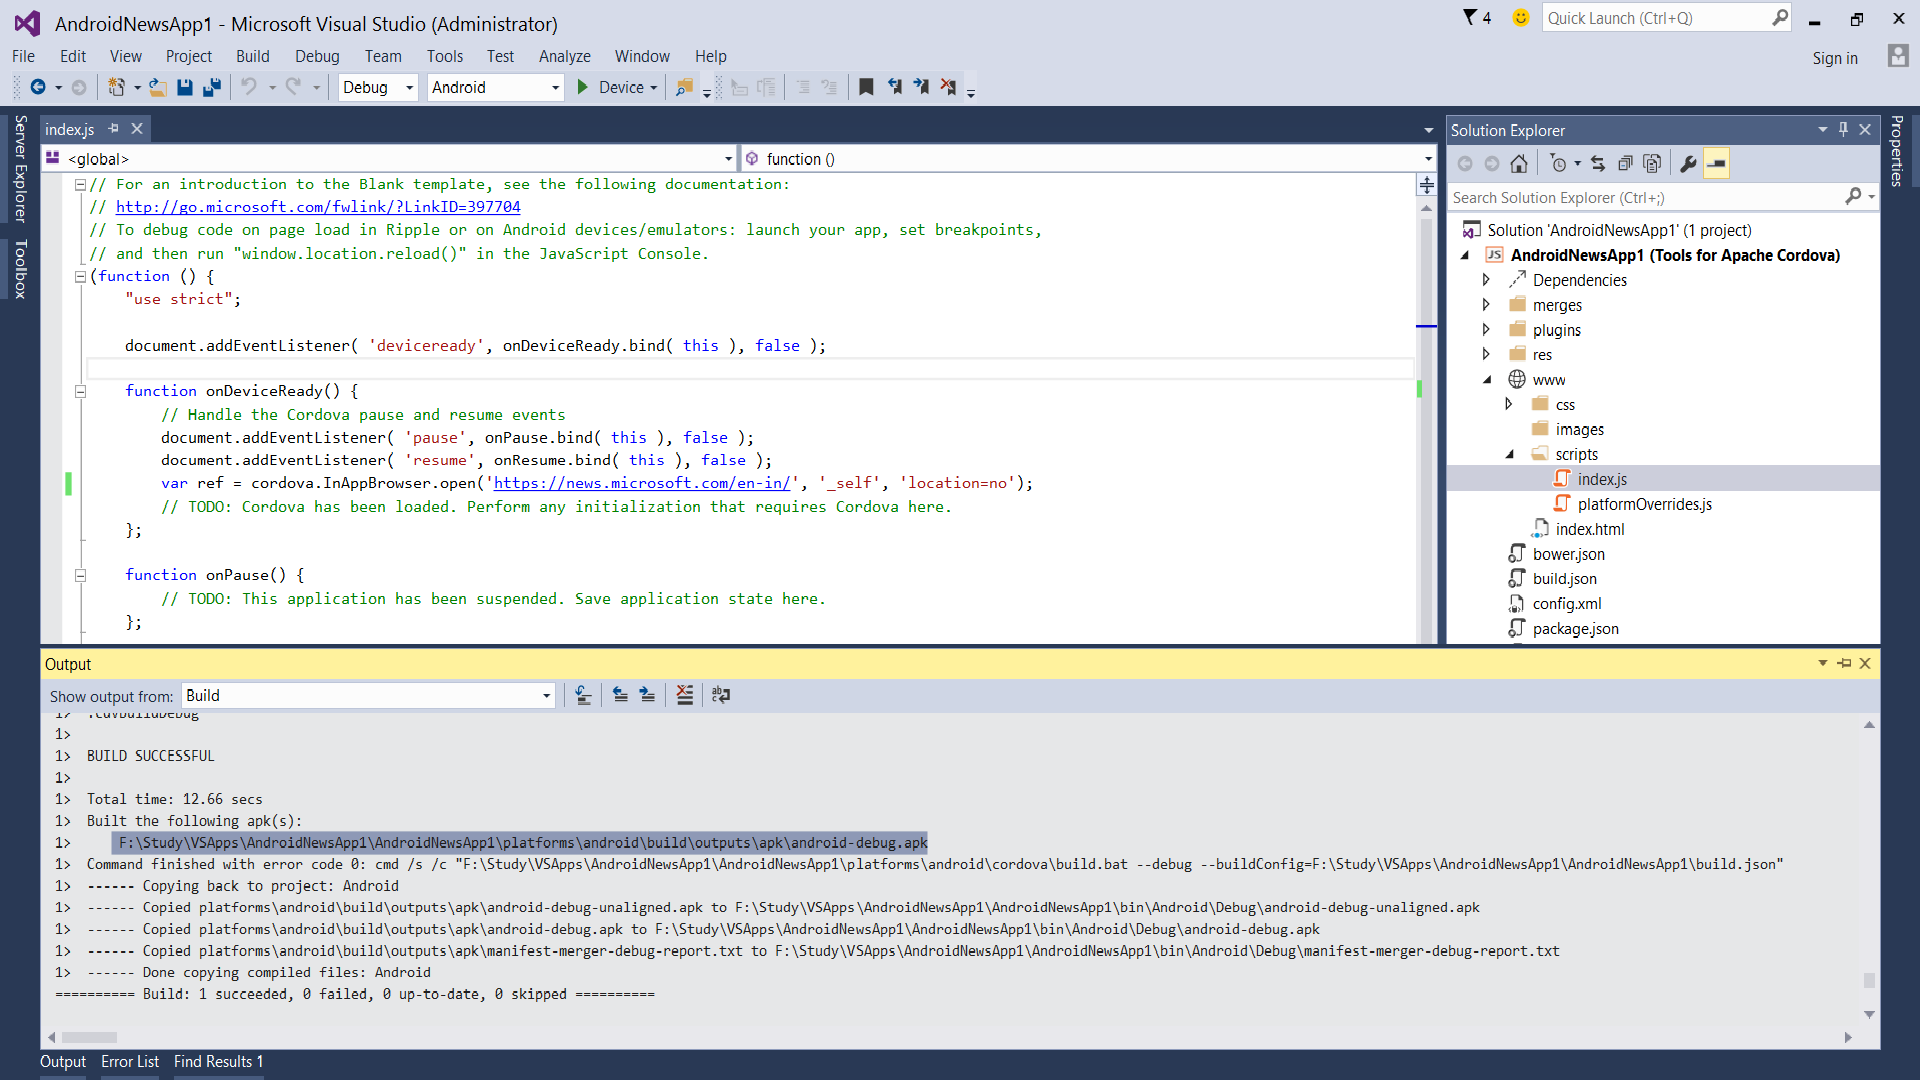 Android News App with Visual Studio 2015 - TechNet Articles